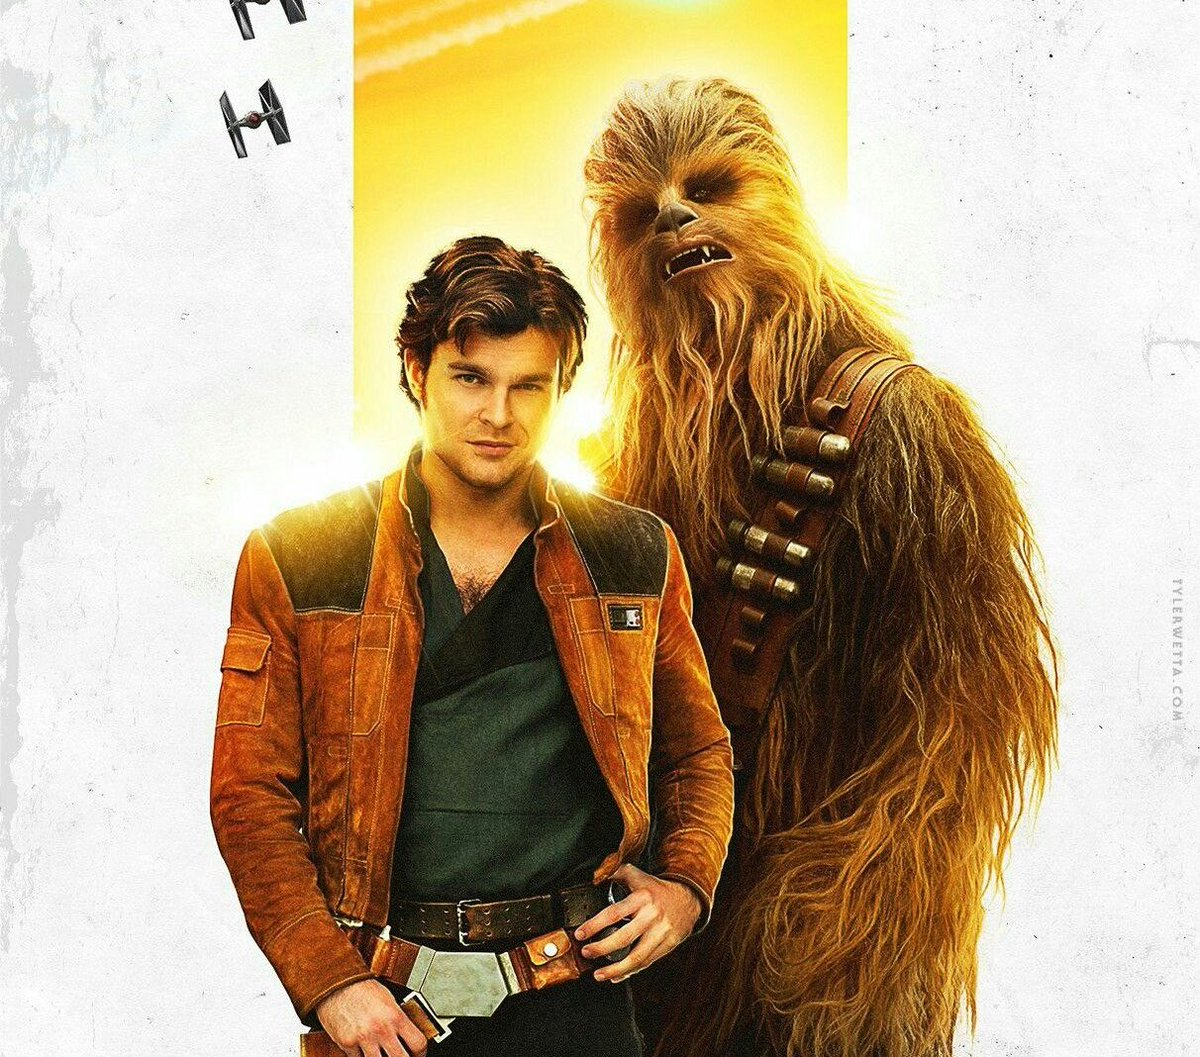 I could watch Han and Chewie pay their taxes for 7 episodes and I'd still find it entertaining. Although, I don't think either of them would pay tax 😂 #MakeSolo2Happen https://t.co/tvclE047eL